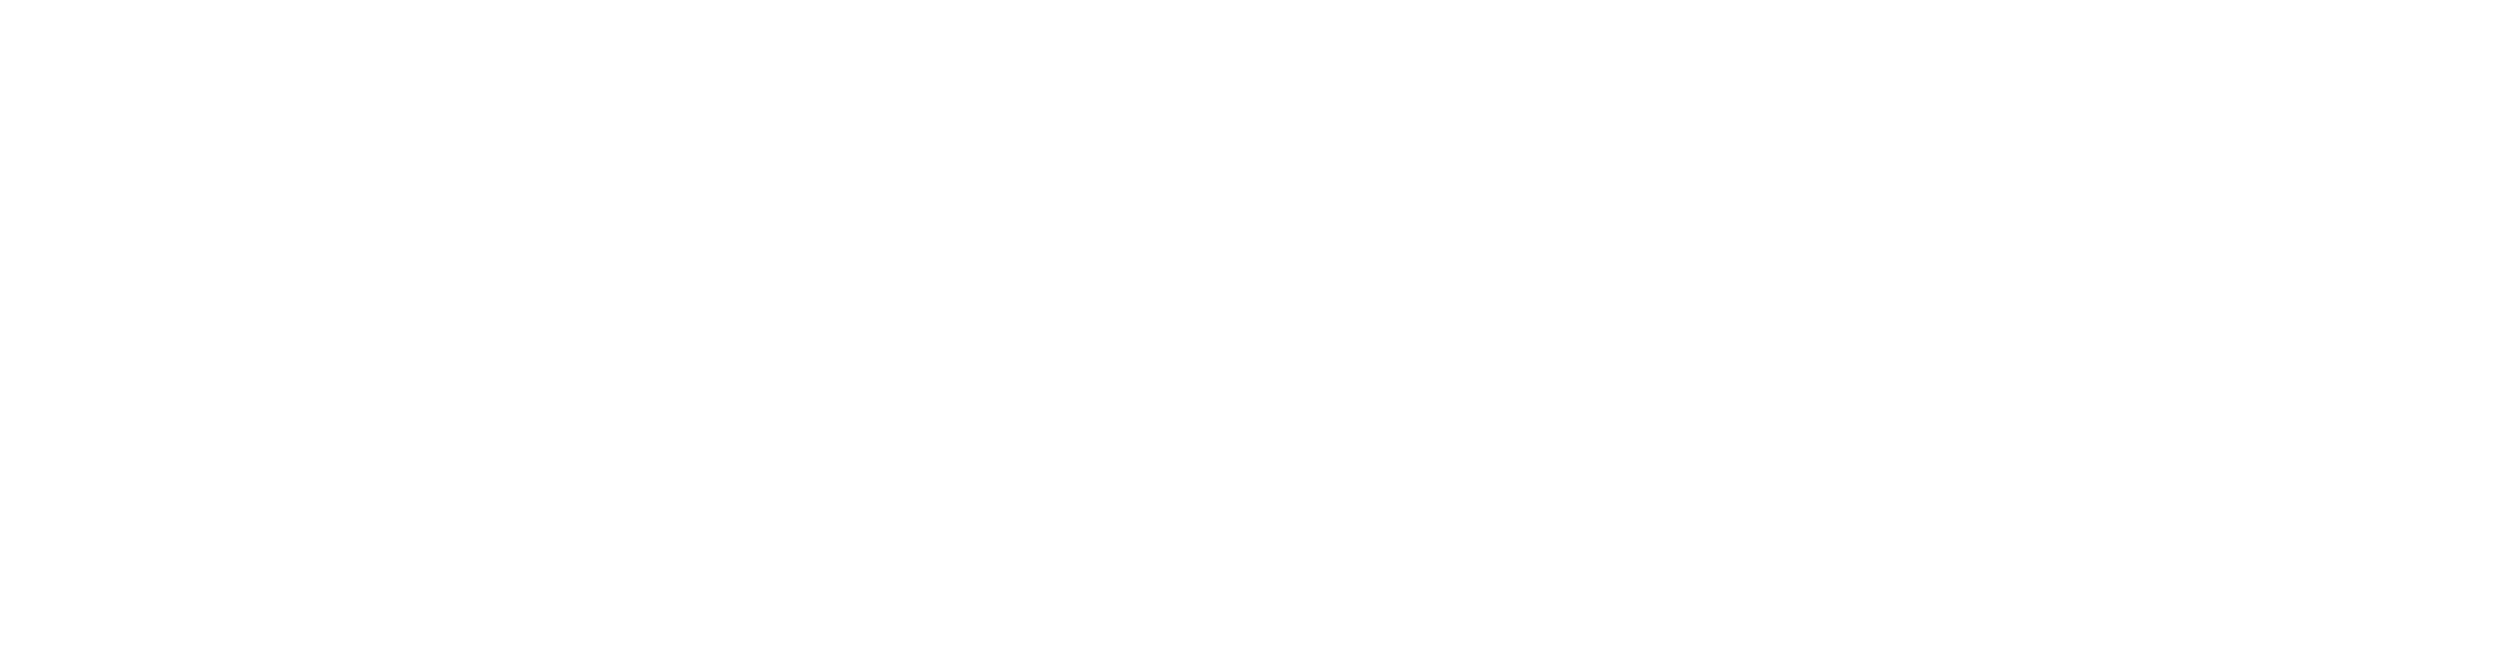 Food_for_the_Hungry_FH_logo.png